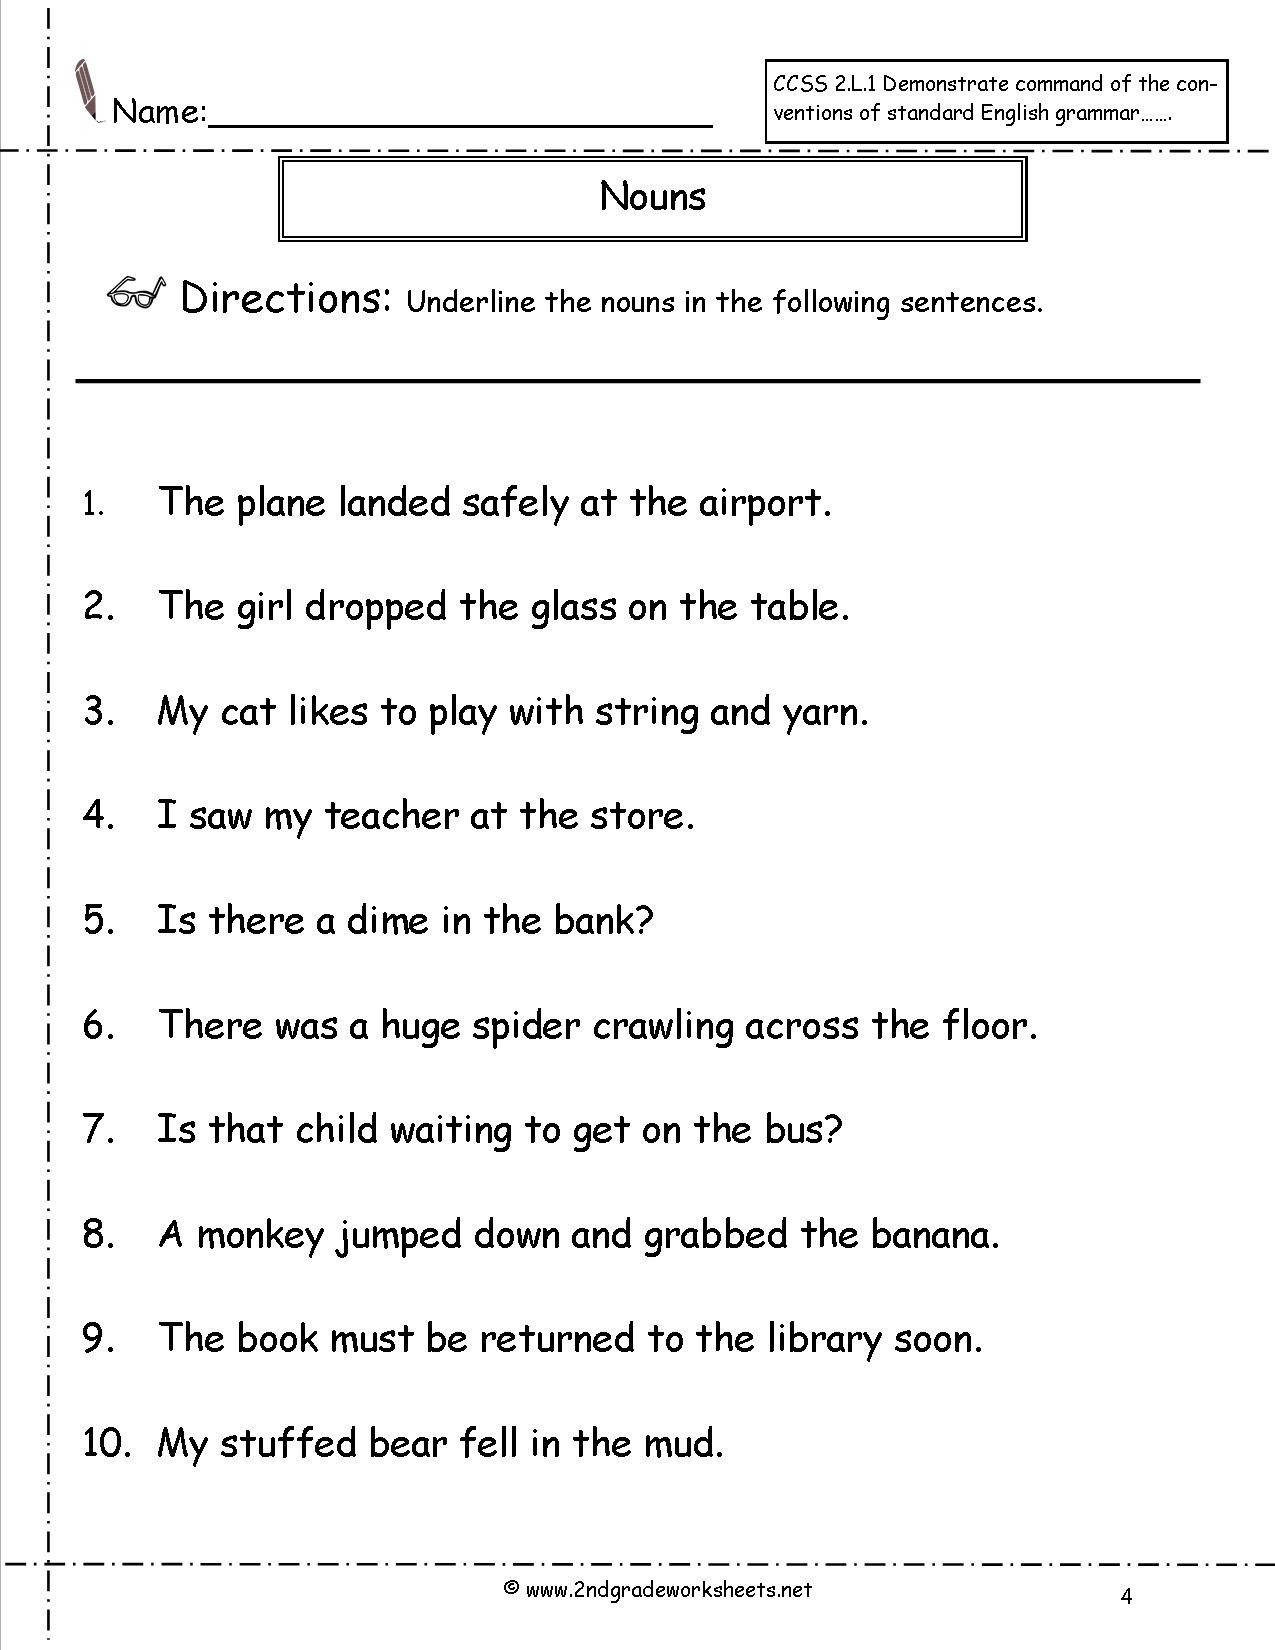 Pronoun Worksheets for 2nd Grade Pronoun Worksheets 2nd